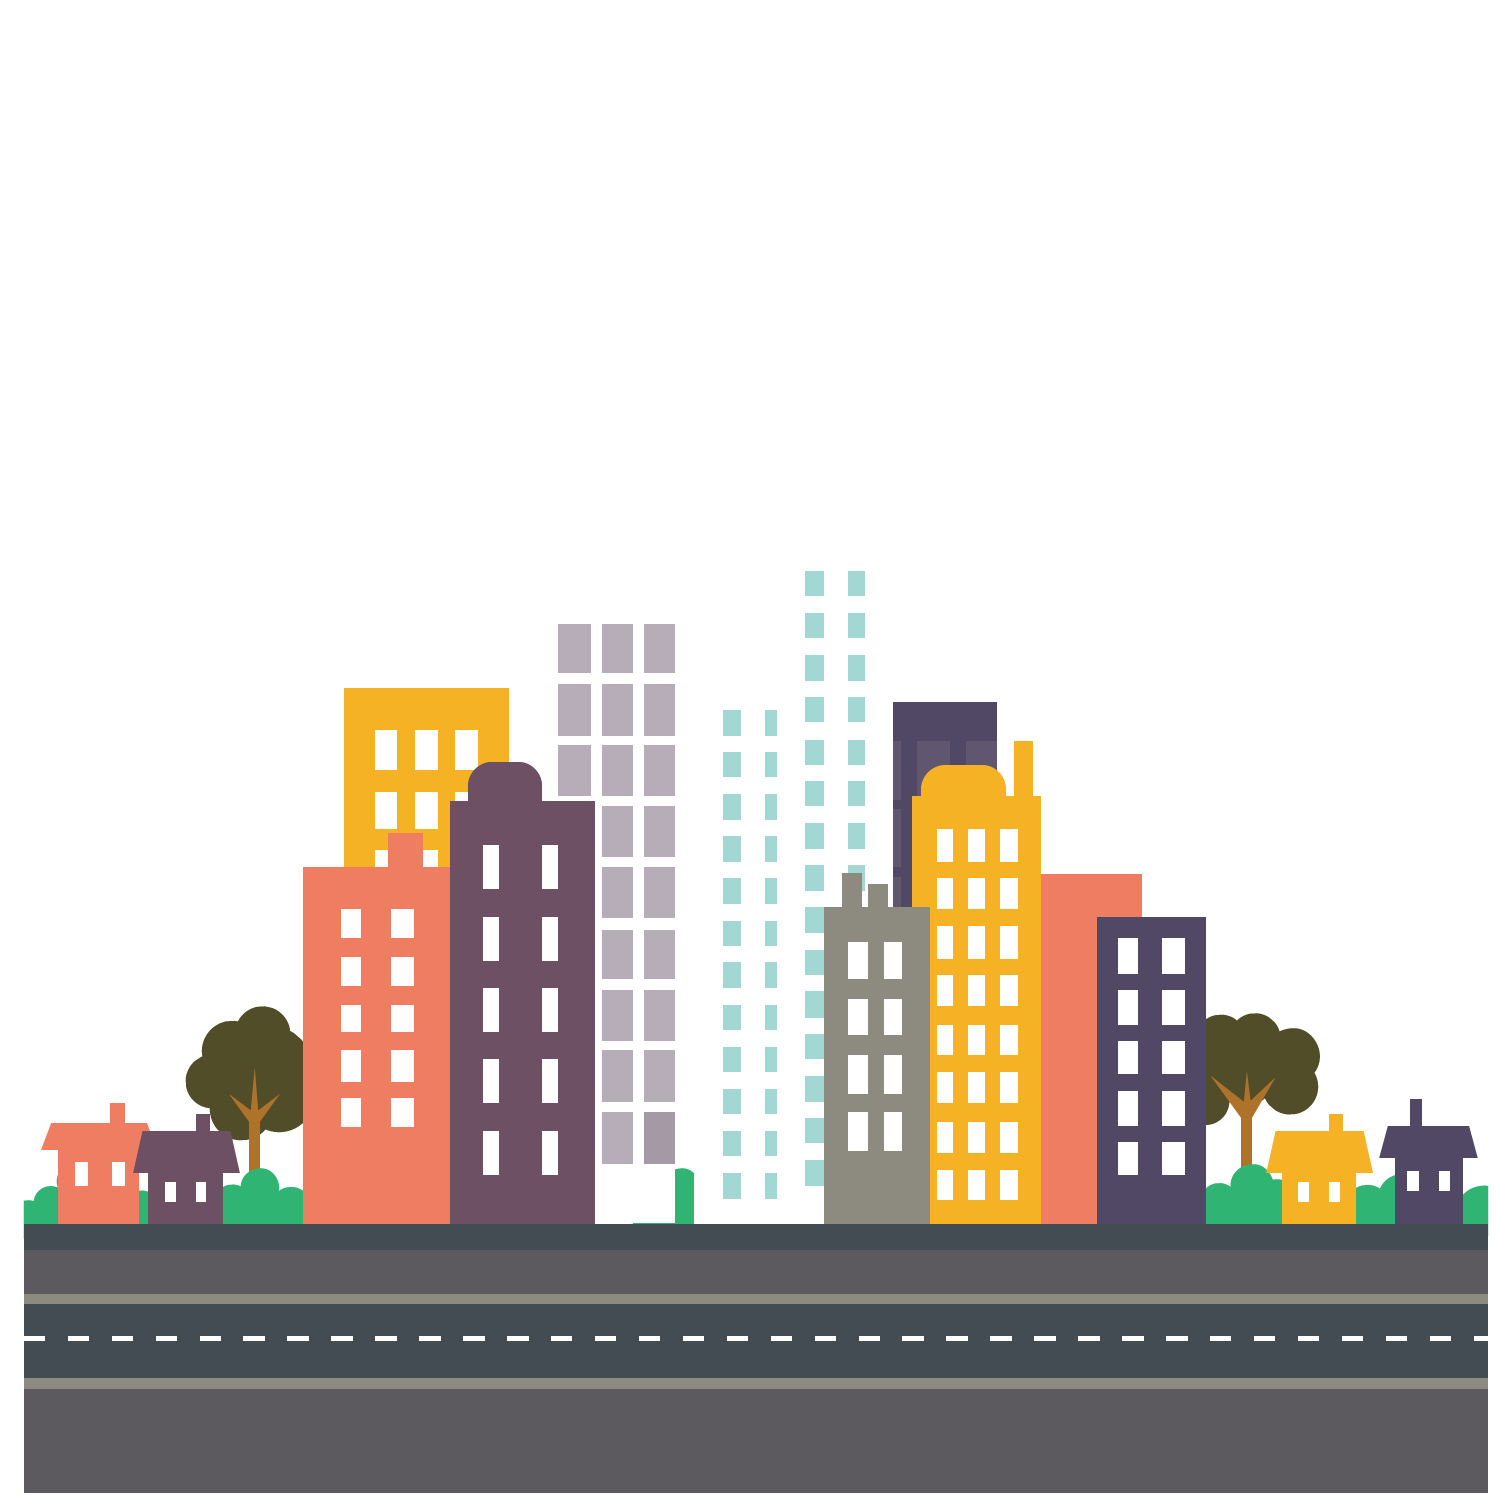 Cartoon cityscape png. Flat design city cute